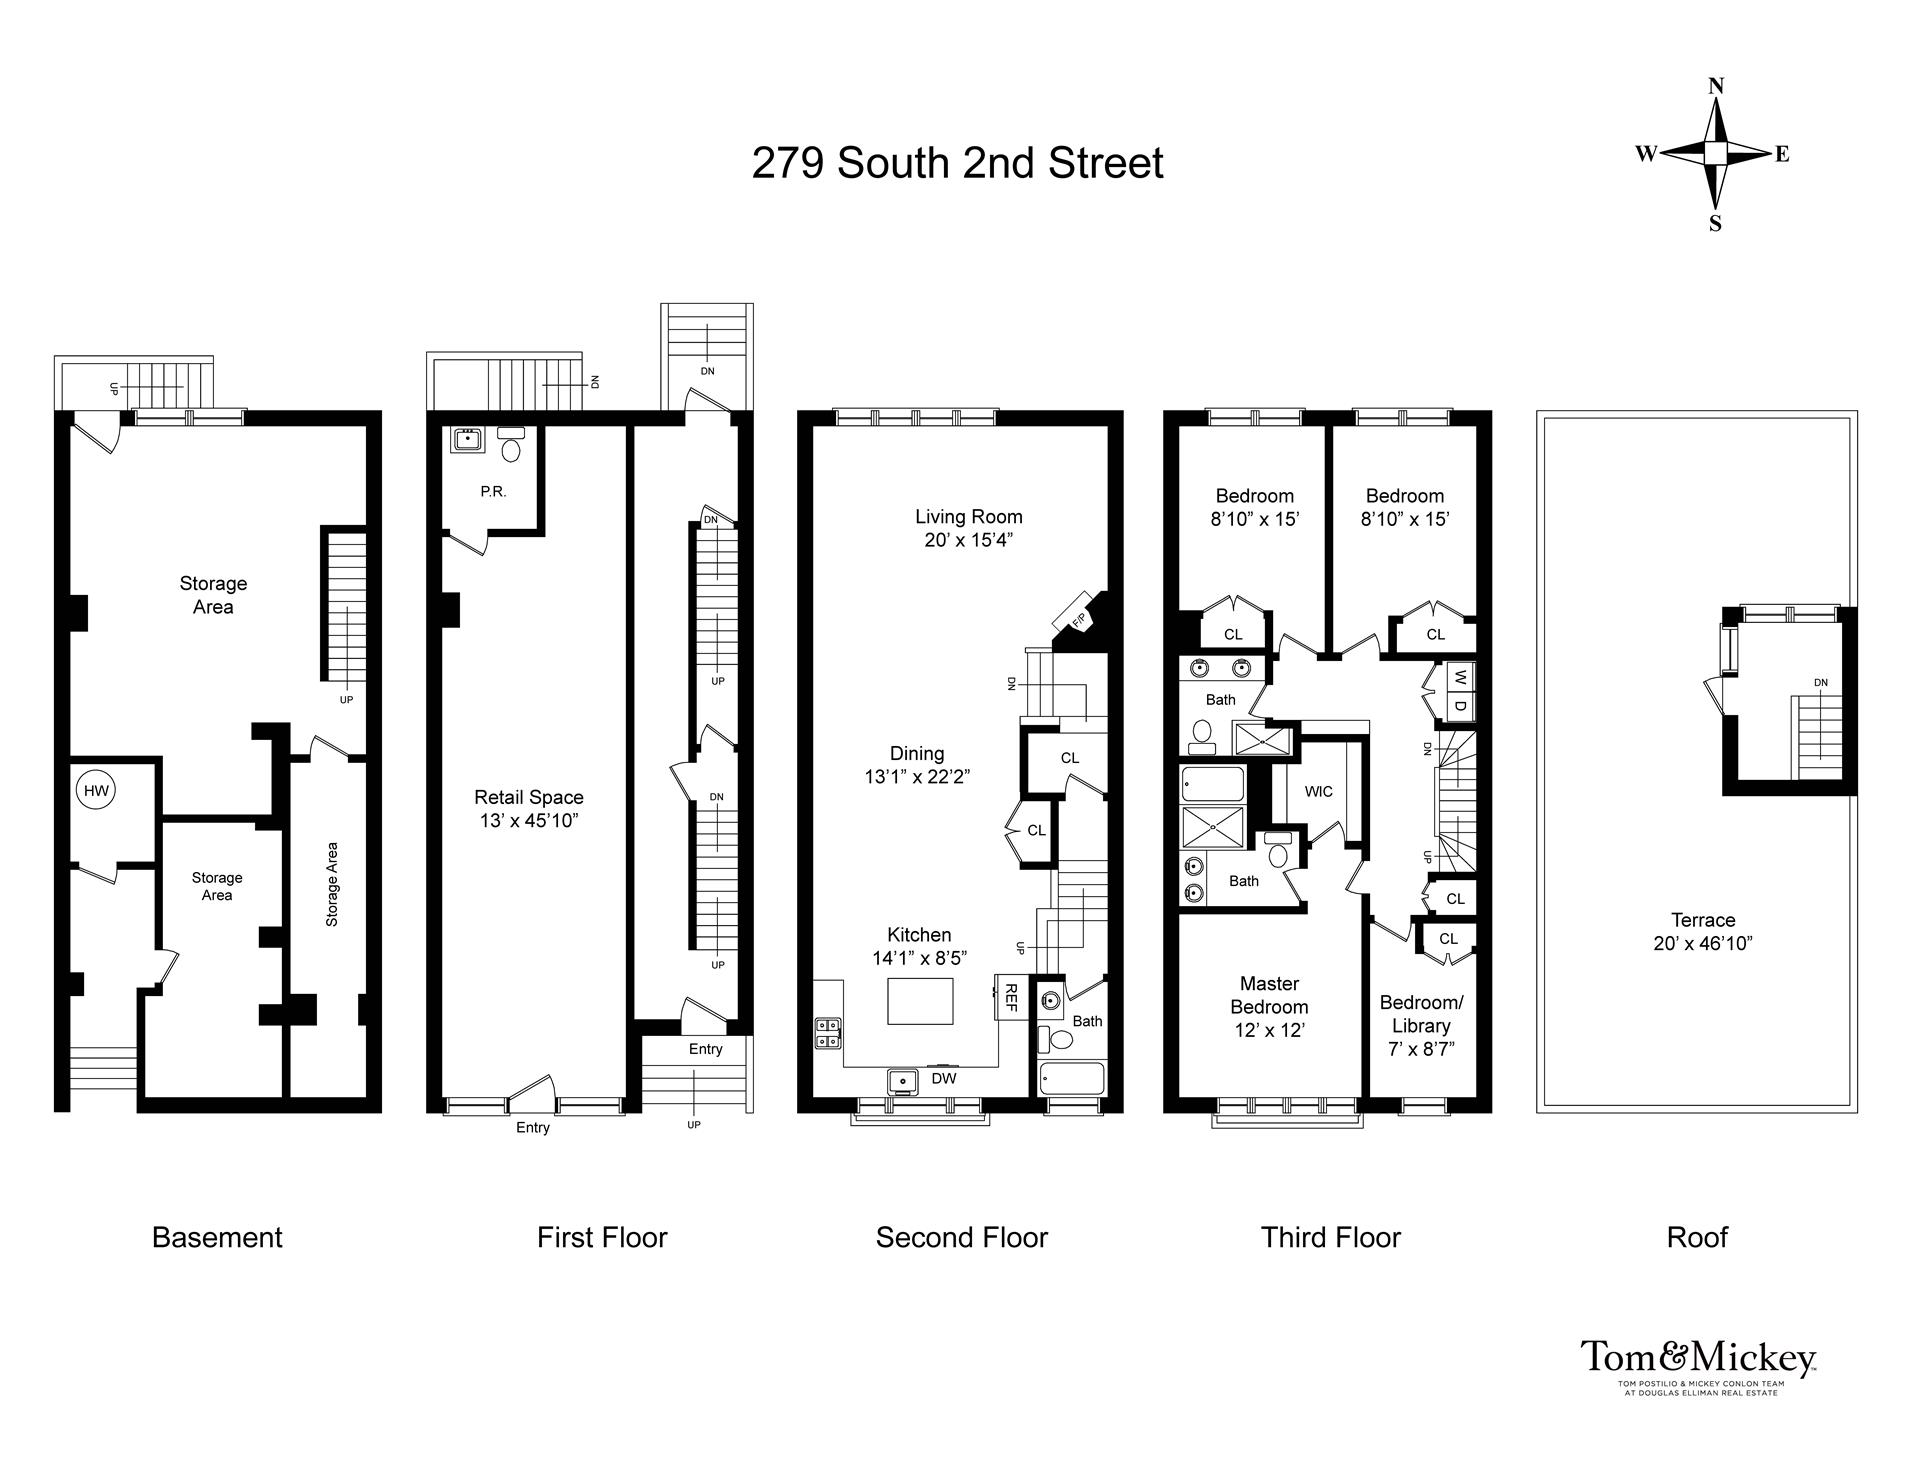 Floor plan of 270 South 2nd St - Williamsburg, New York